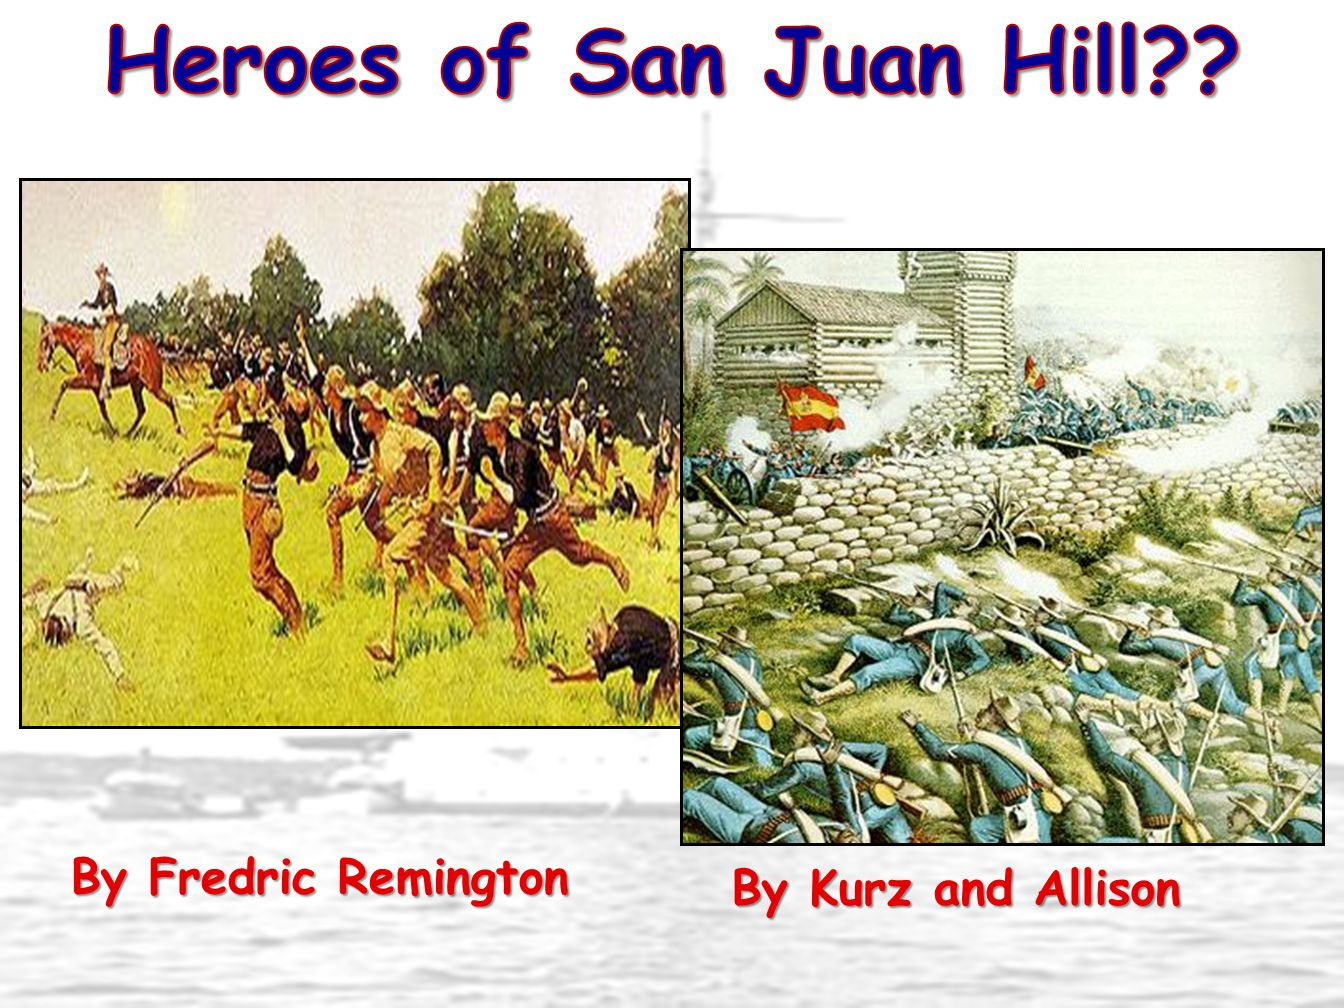 Heroes of San Juan Hill By Fredric Remington By Kurz and Allison